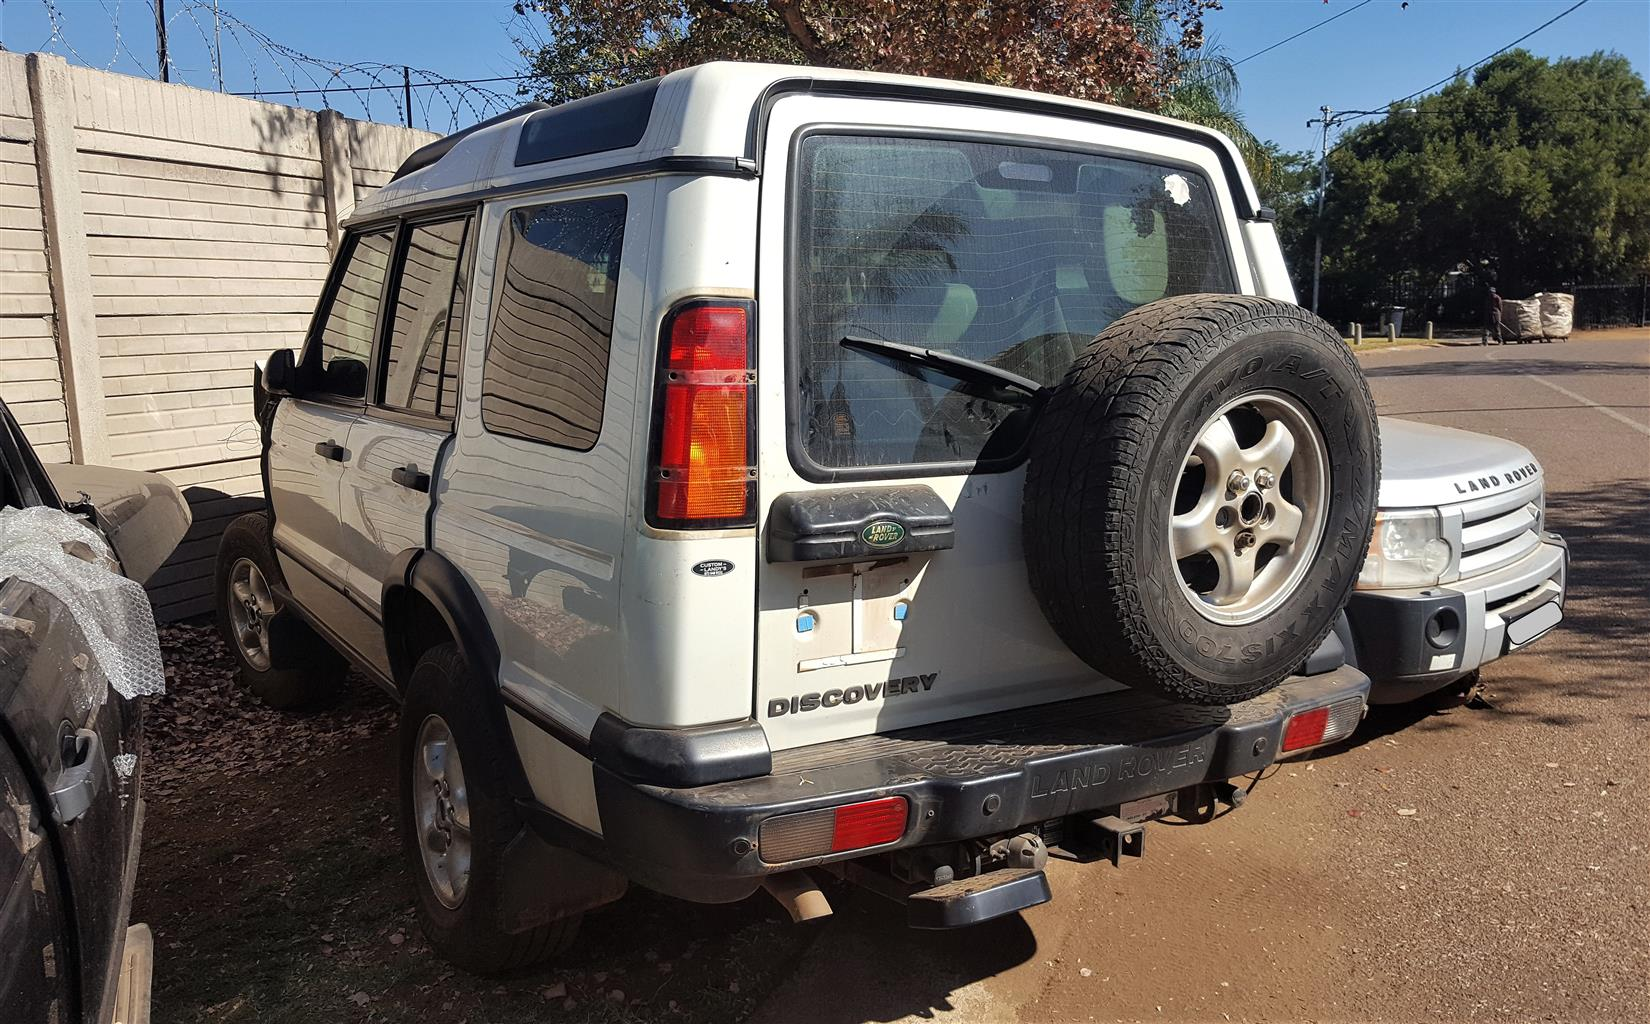 Land Rover Discovery 2 TD5 - Striping for spares